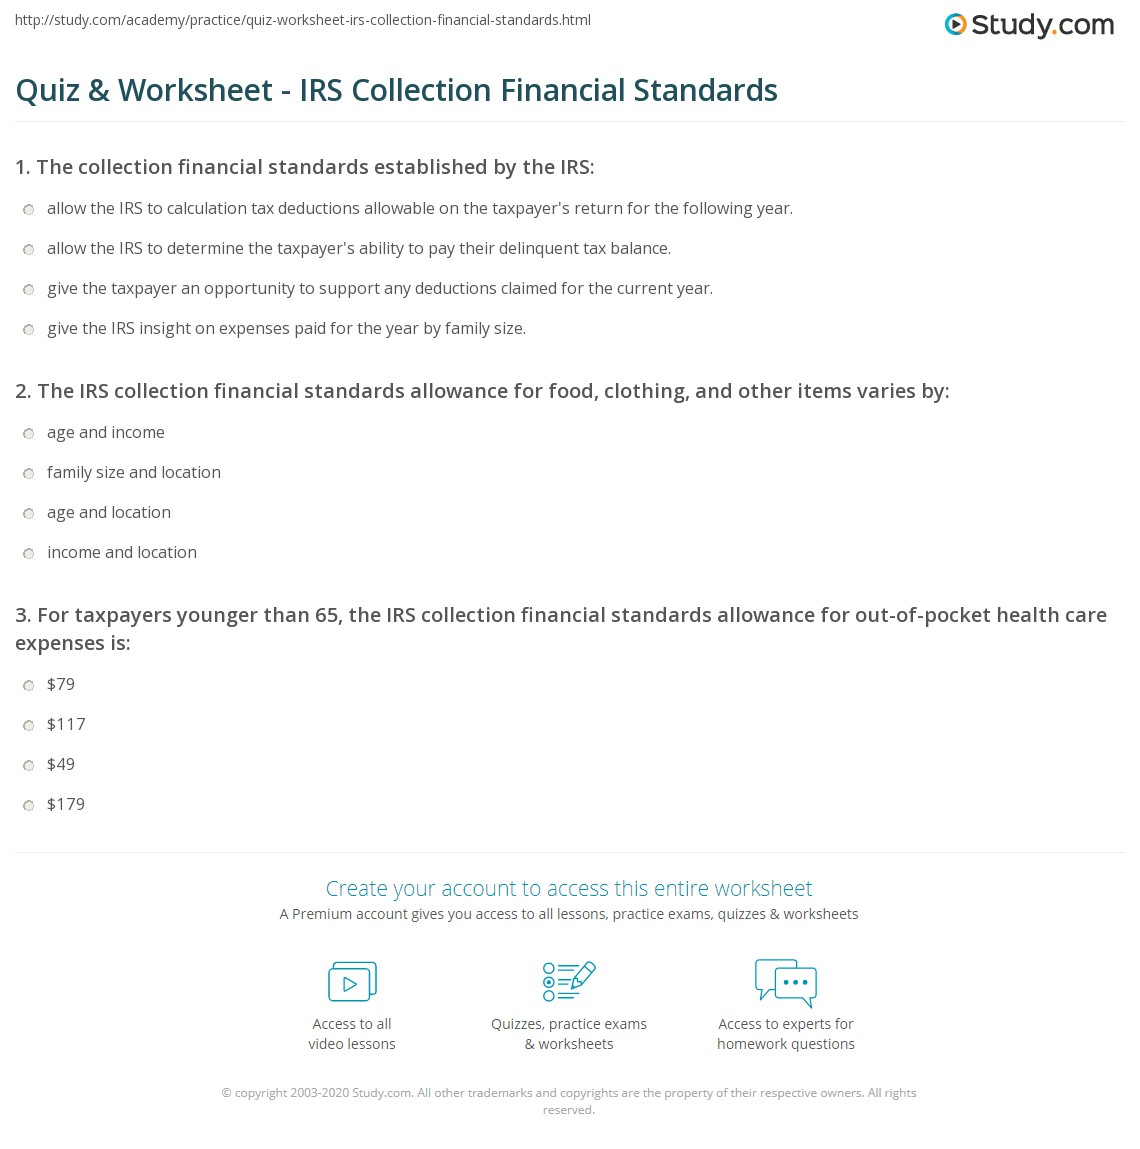 Quiz Worksheet Irs Collection Financial Standards Study